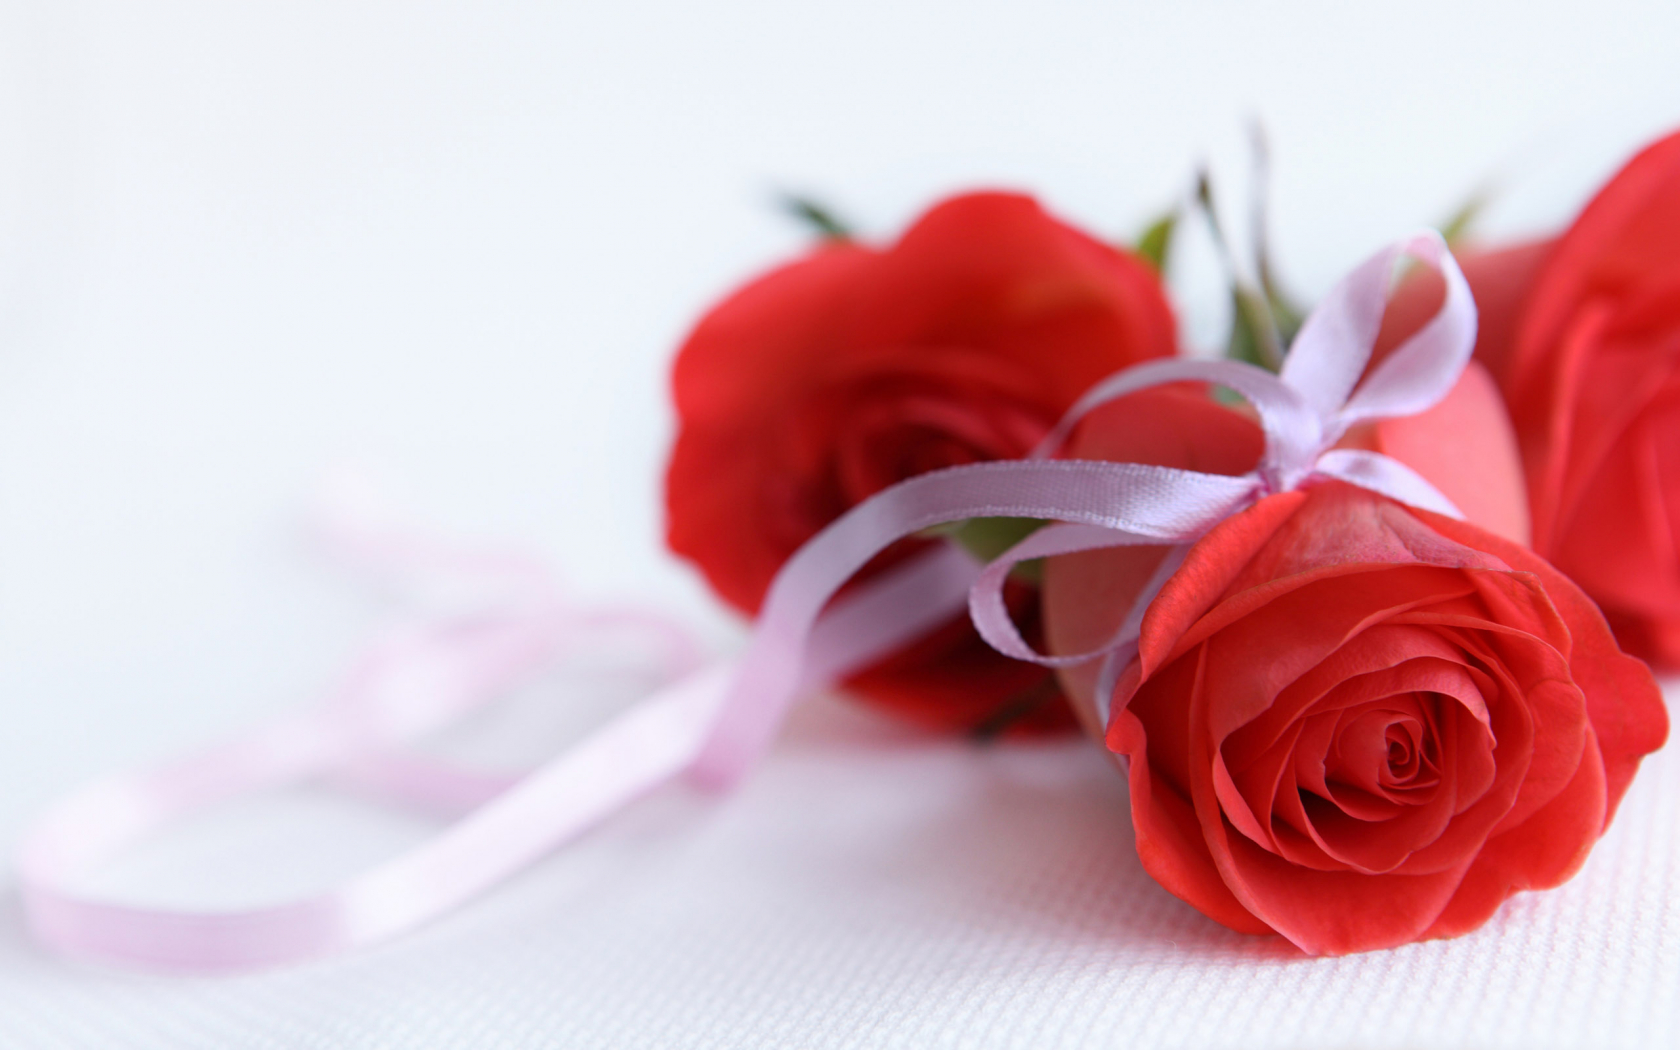 I love you pictures with roses New York Fashion Schools and Degrees Fashion Schools USA